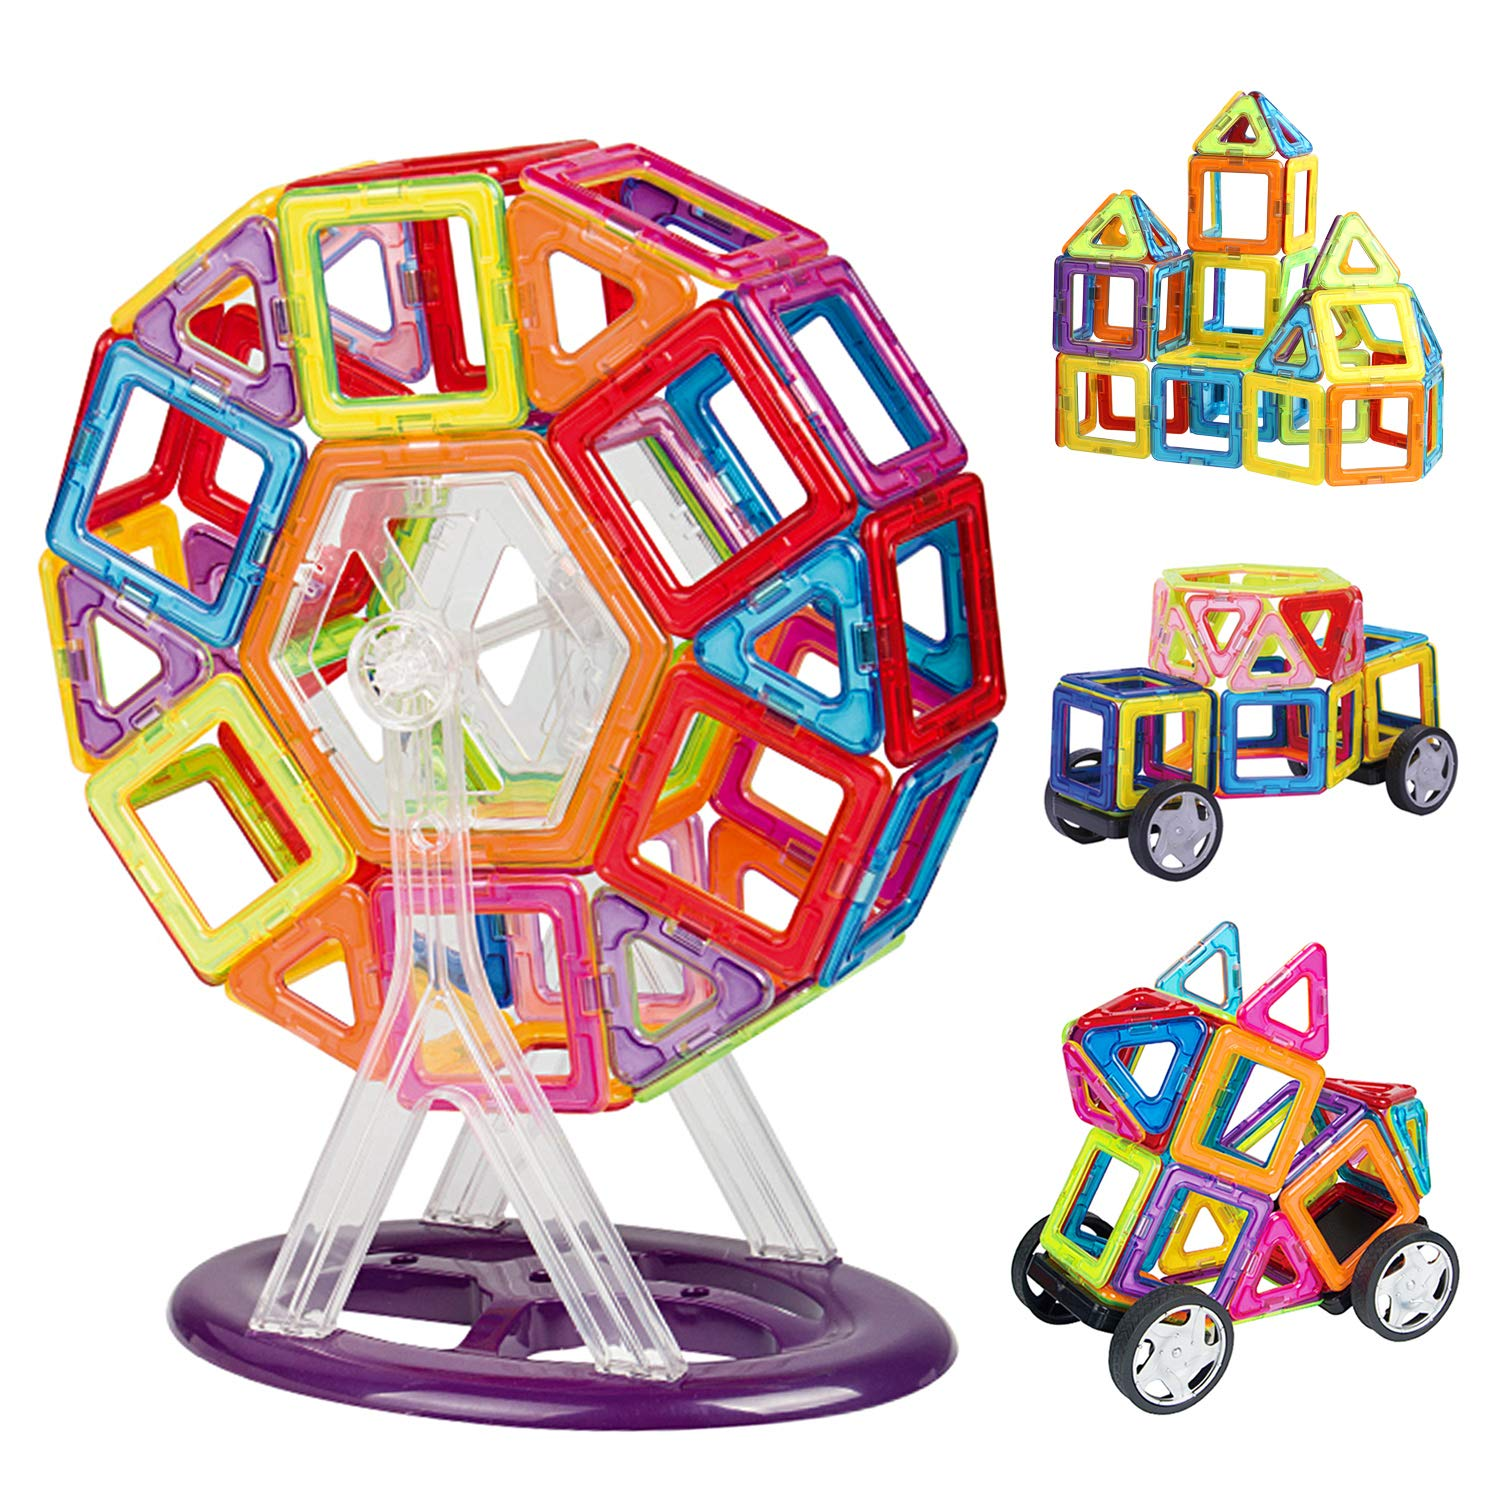 INTEY Magnetic Building Blocks(66PCS)